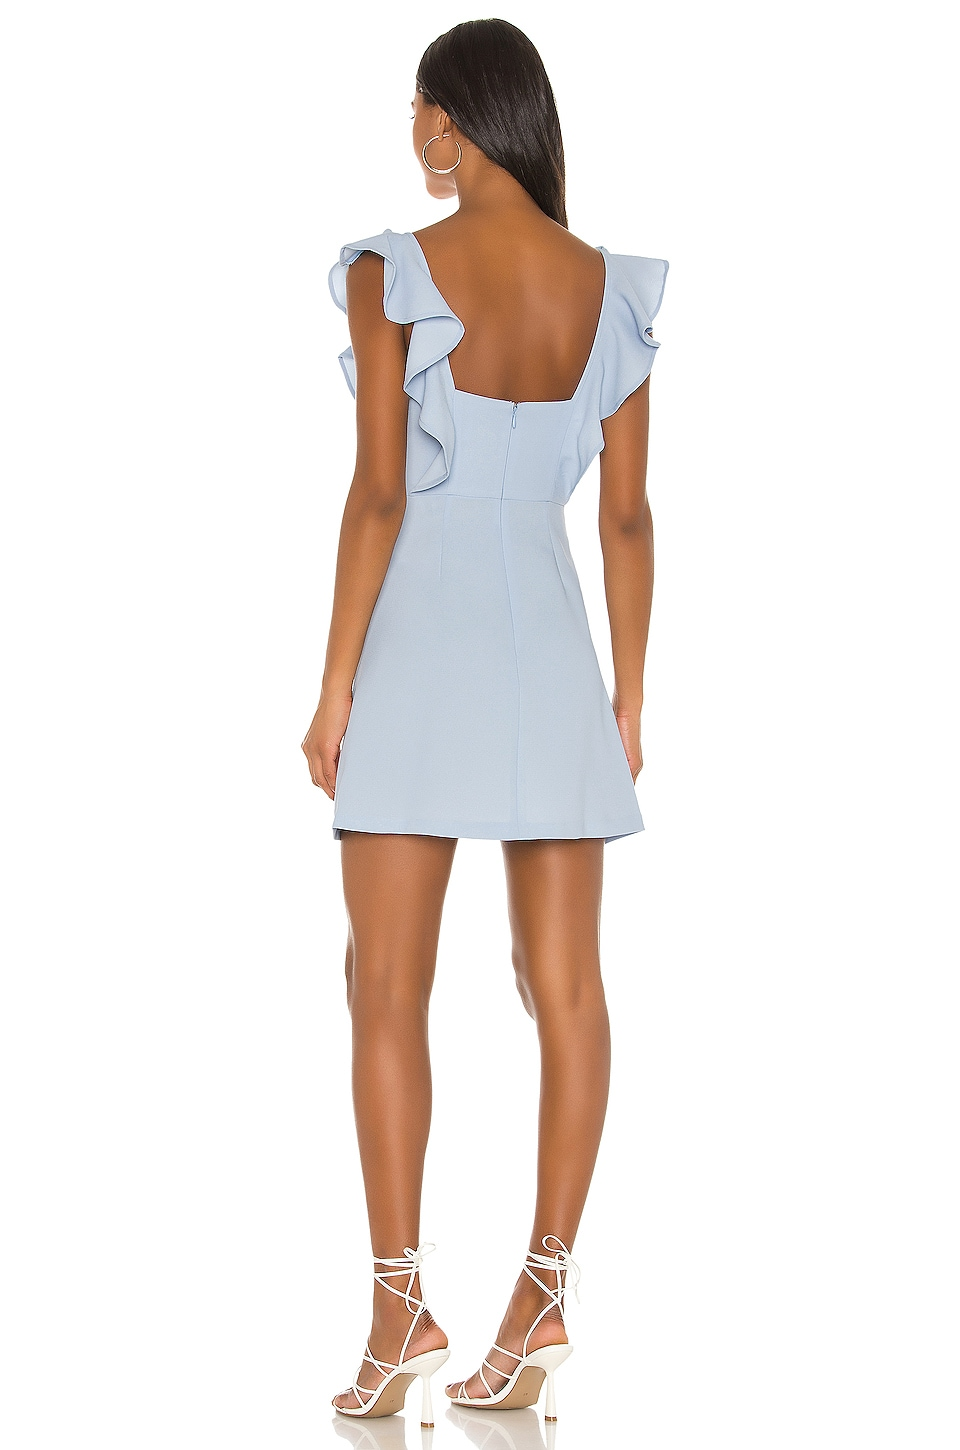 Ruffle Sleeve Square Neck Dress, view 3, click to view large image.